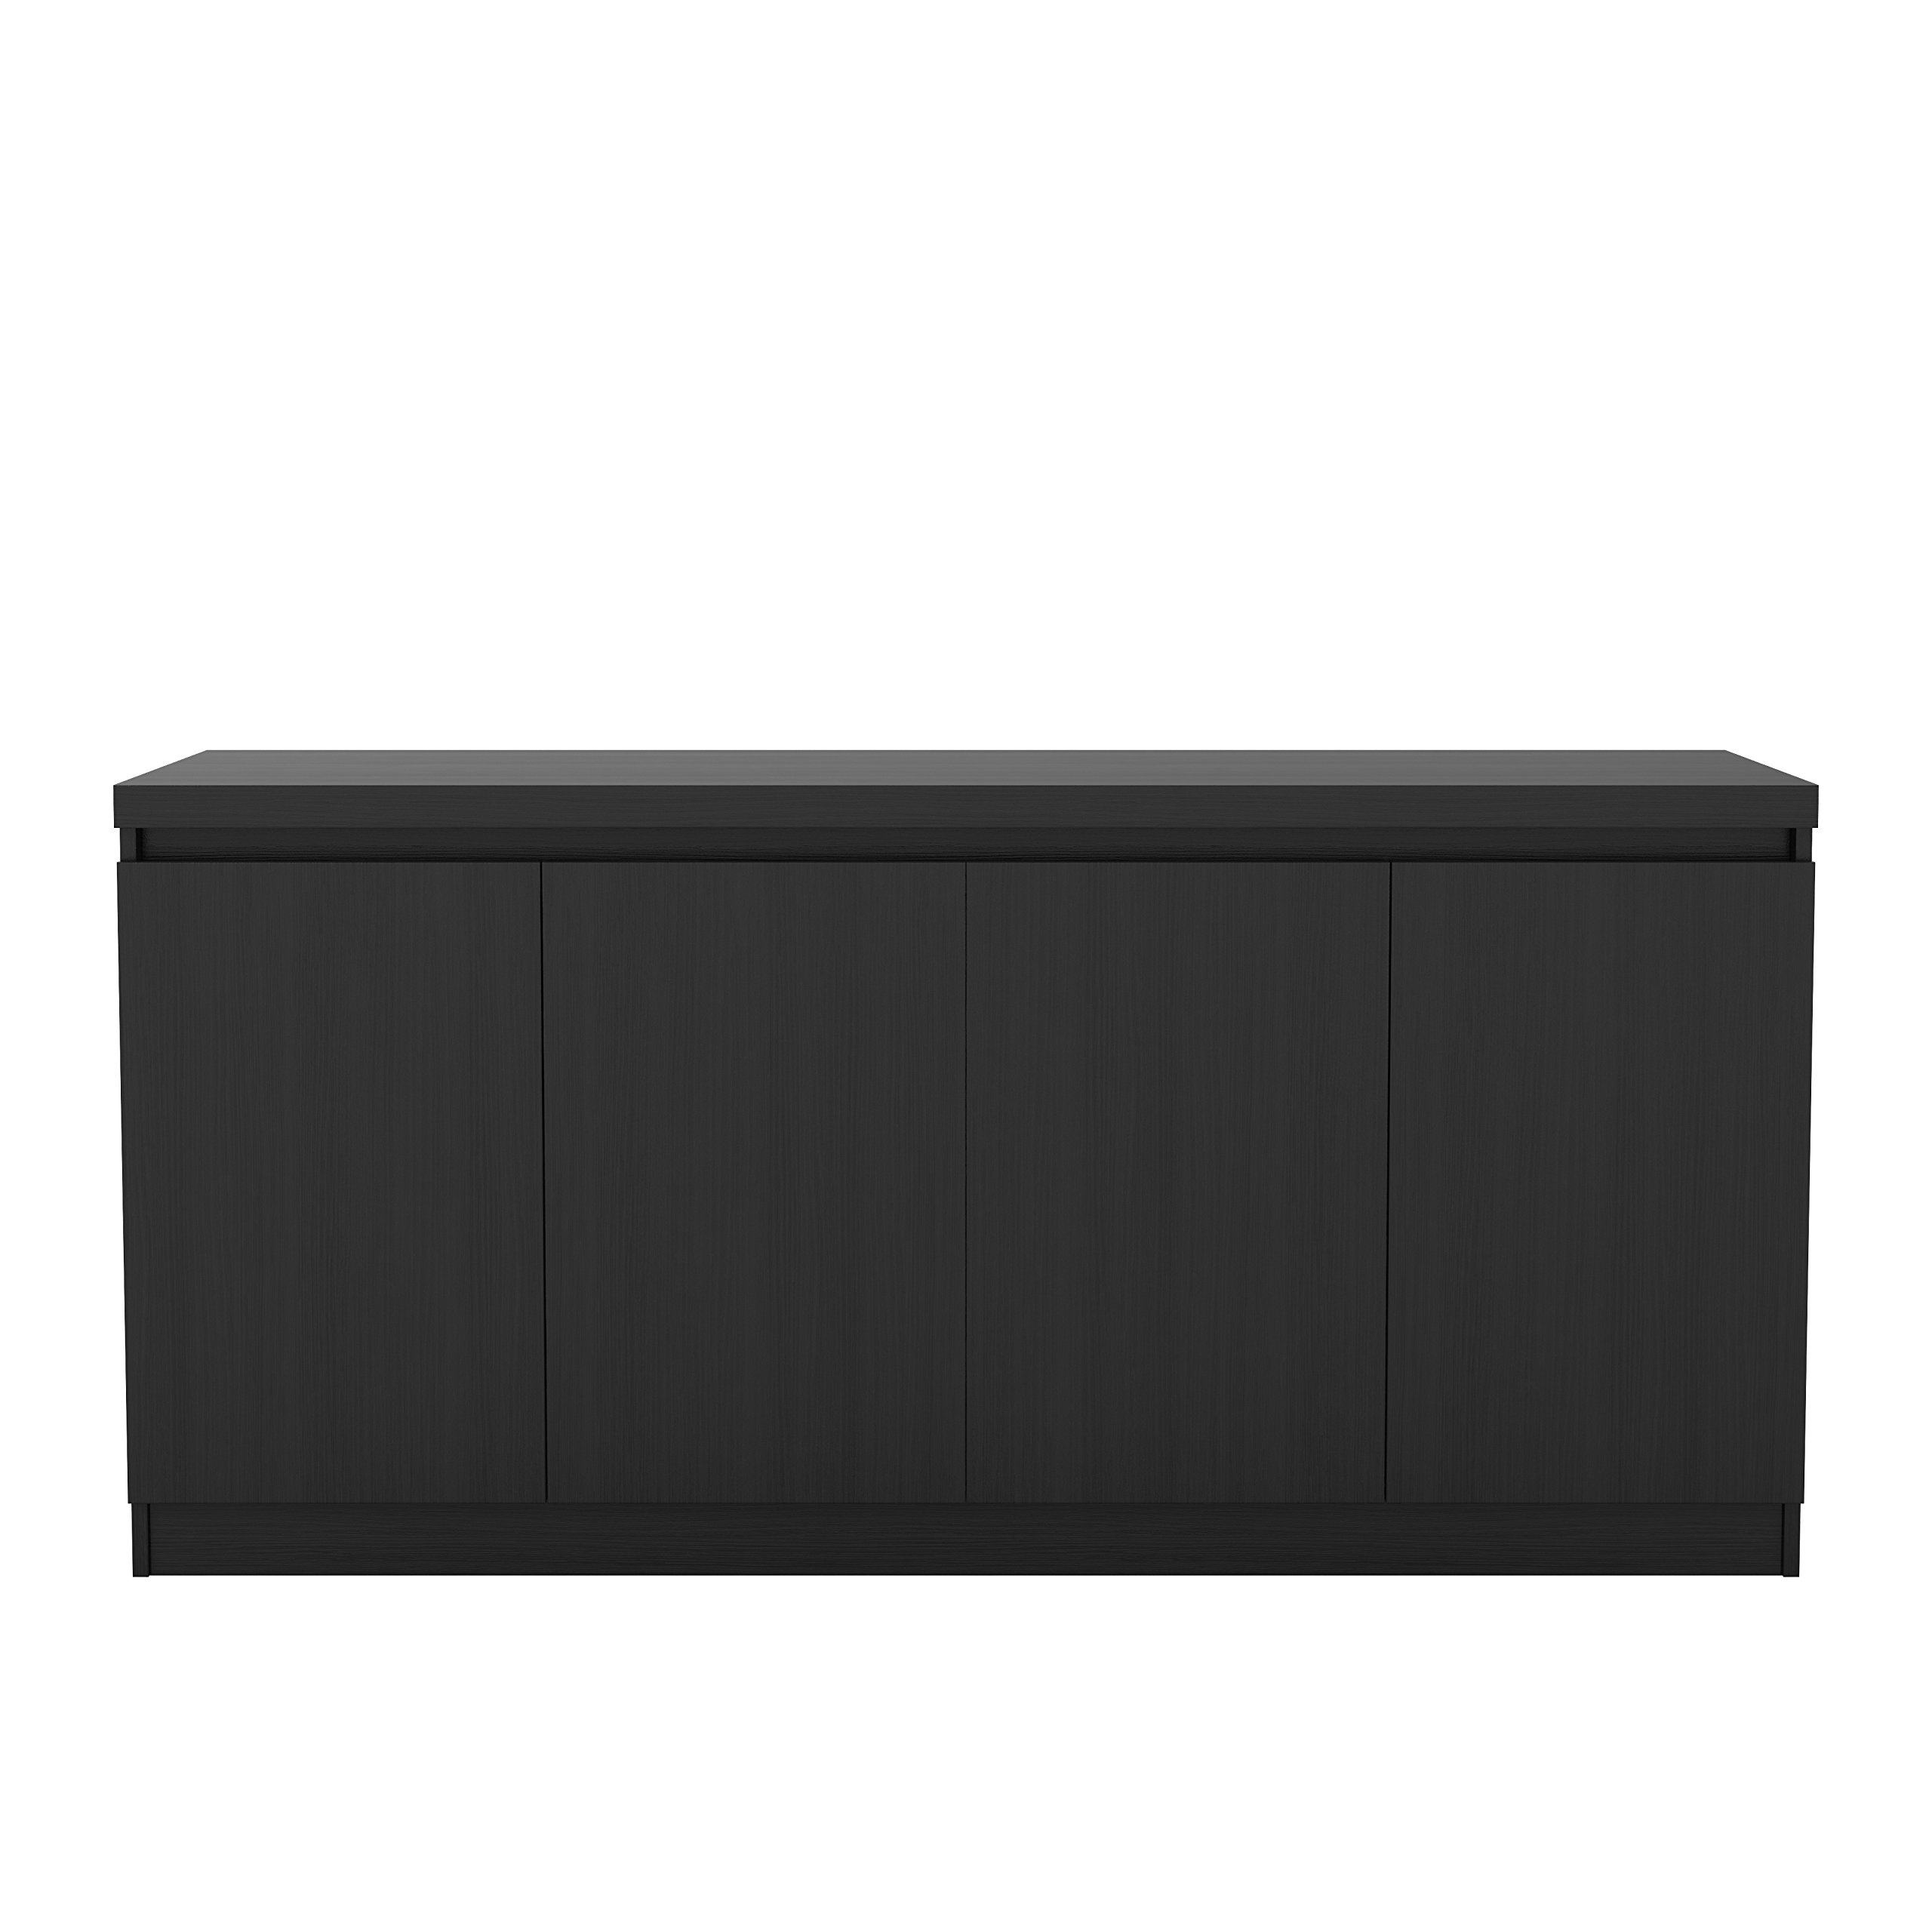 Manhattan Comfort Viennese Collection 6 Shelf Gloss Finished Long Buffet Cabinet / Dining Console with 4 Doors, Black Gloss